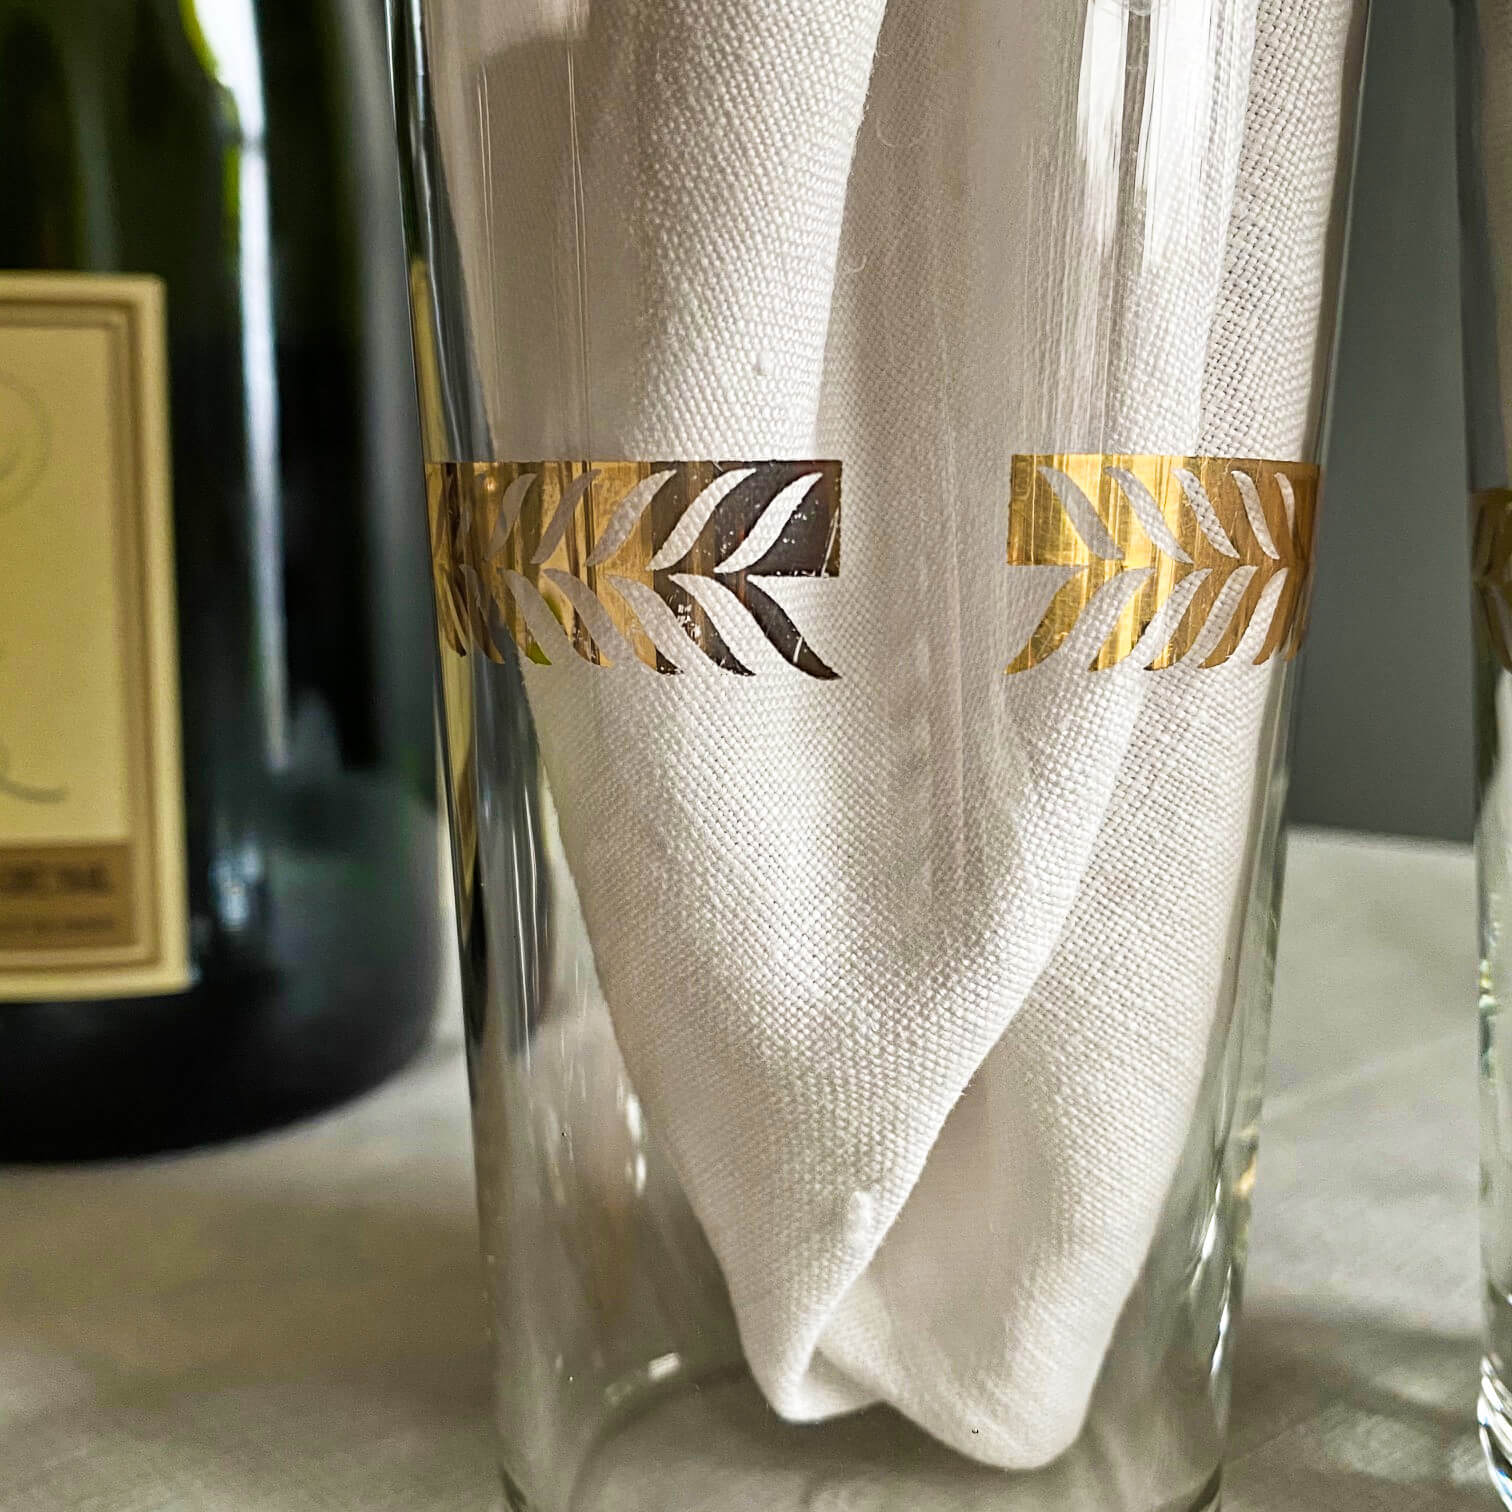 Vintage 1940s Monogrammed Cocktail Glasses with Gold Lettering & Laurel Leaves -  Libbey Glass Co. c 1948